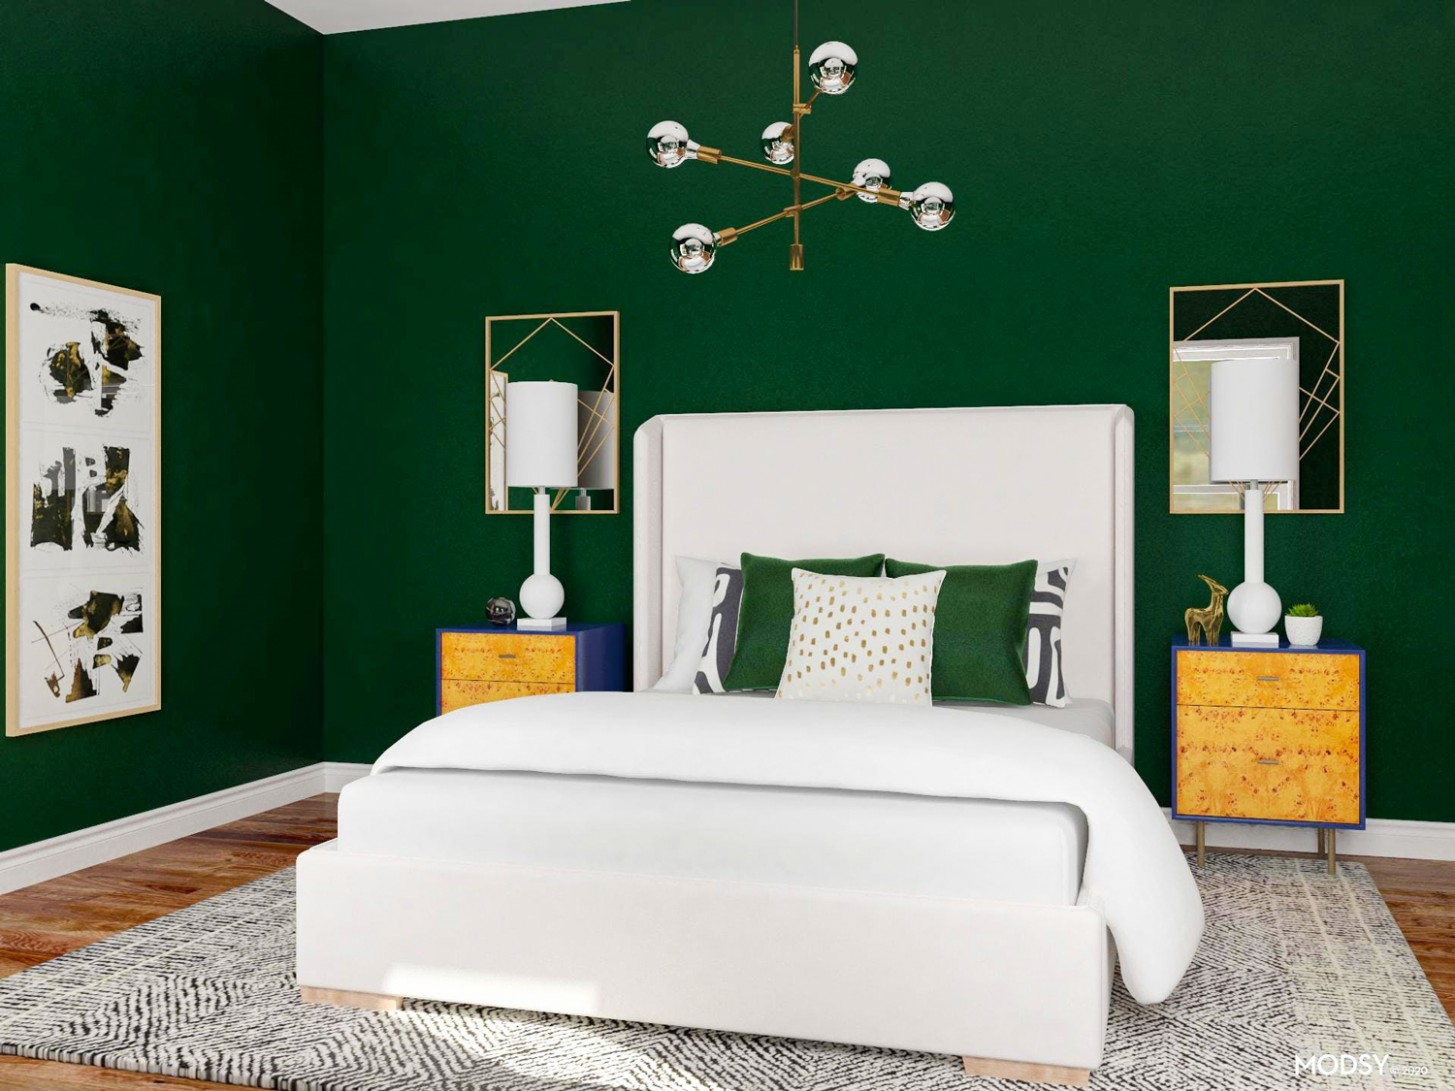 8 Green Bedroom Ideas for the Perfect Relaxing Retreat  Modsy Blog - Bedroom Ideas Green